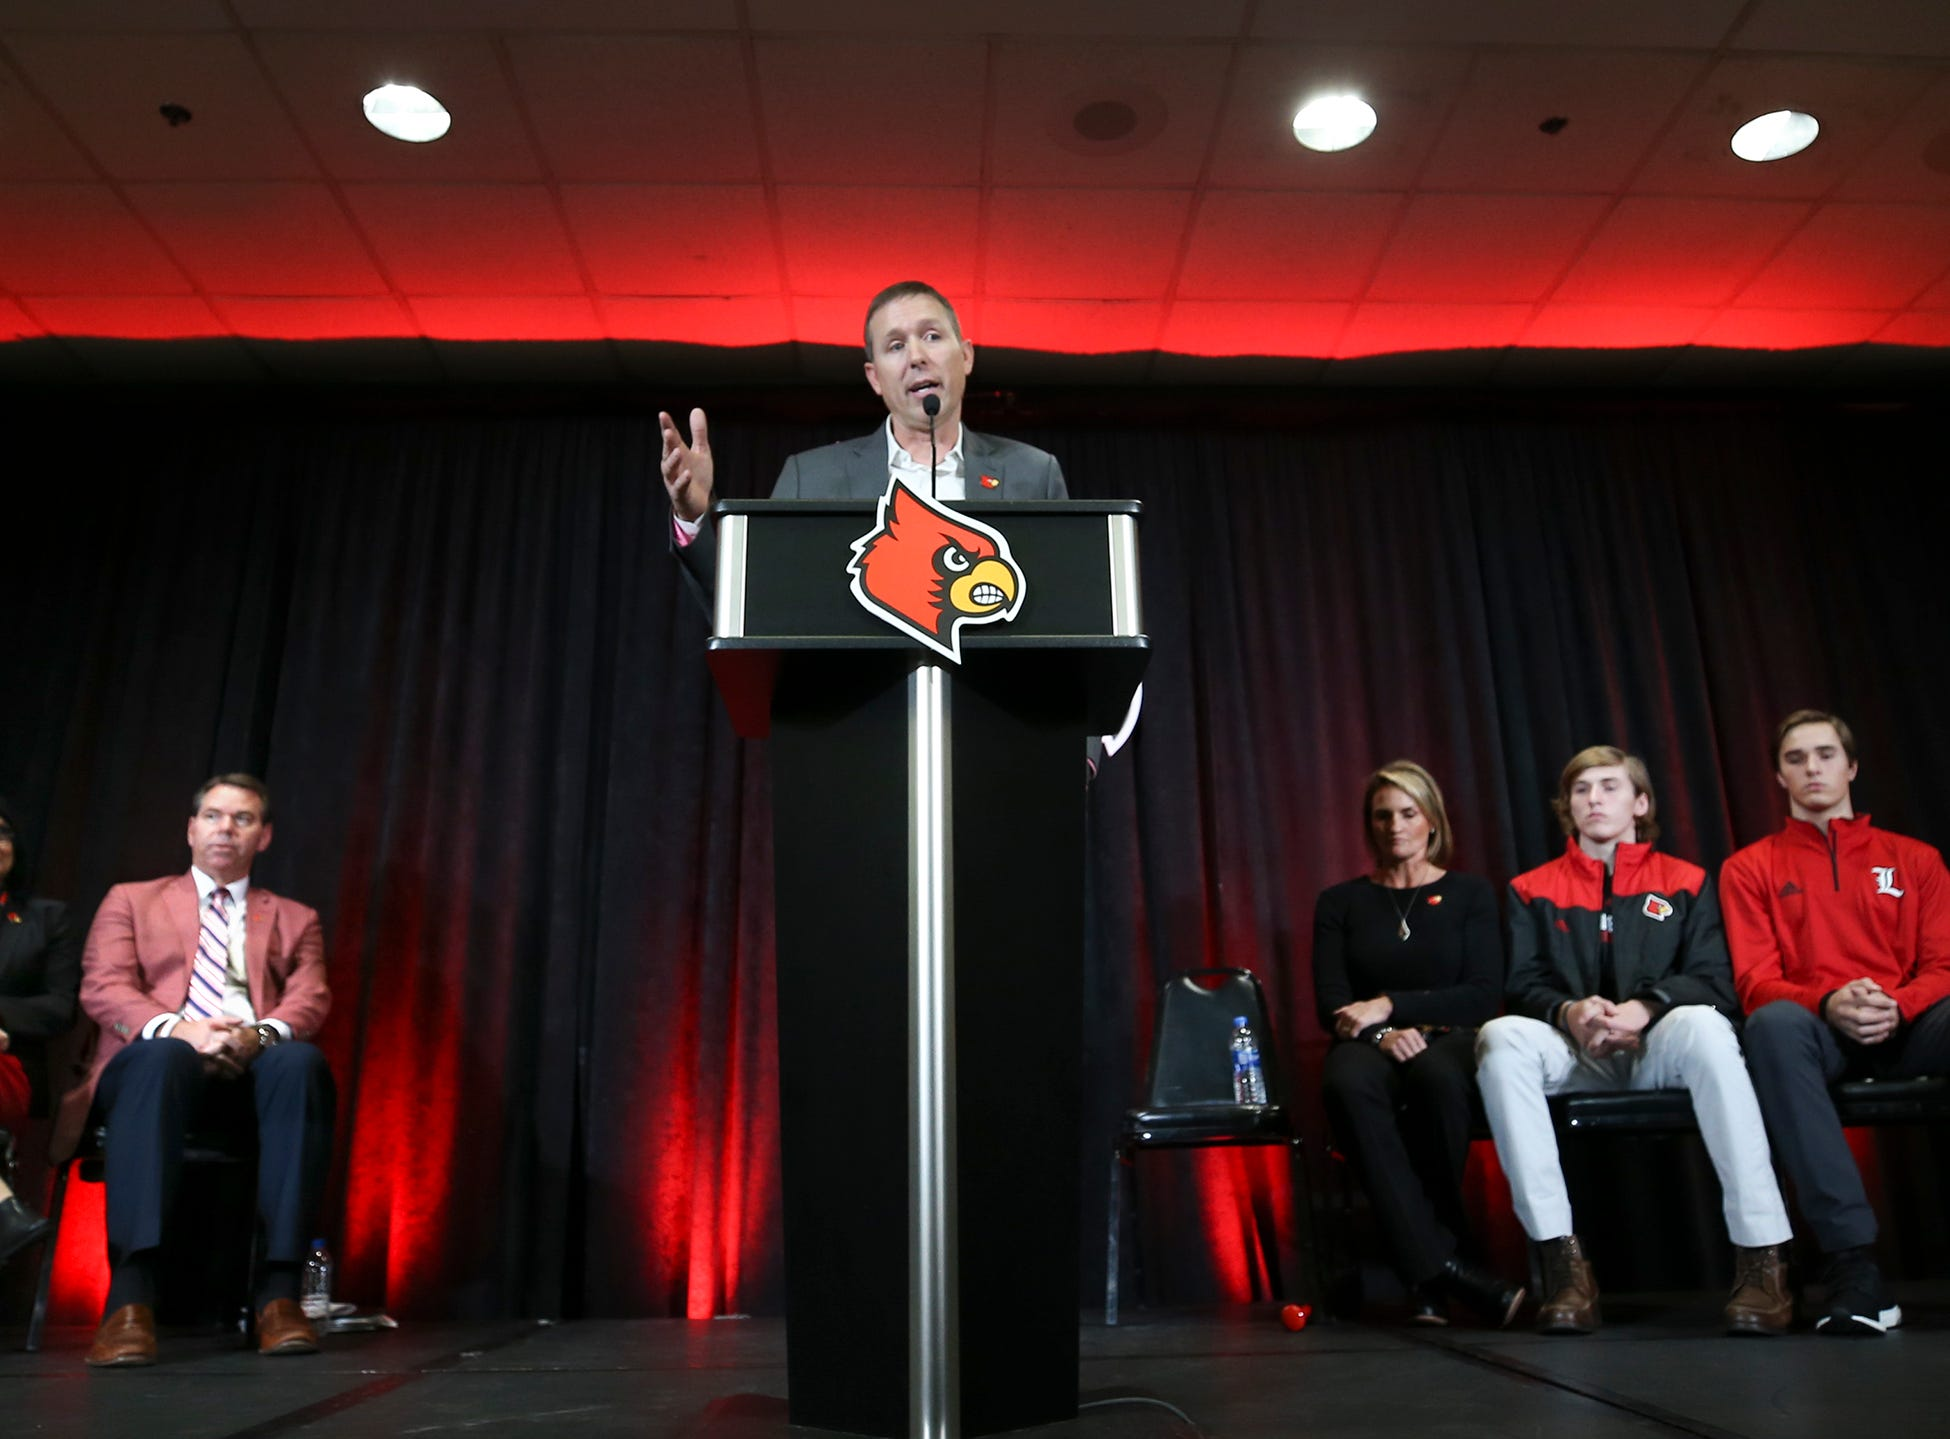 Coach Scott Satterfield speaks after being named coach at Louisville on Tuesday evening.  Satterfield's family is on the right.  December 4, 2018